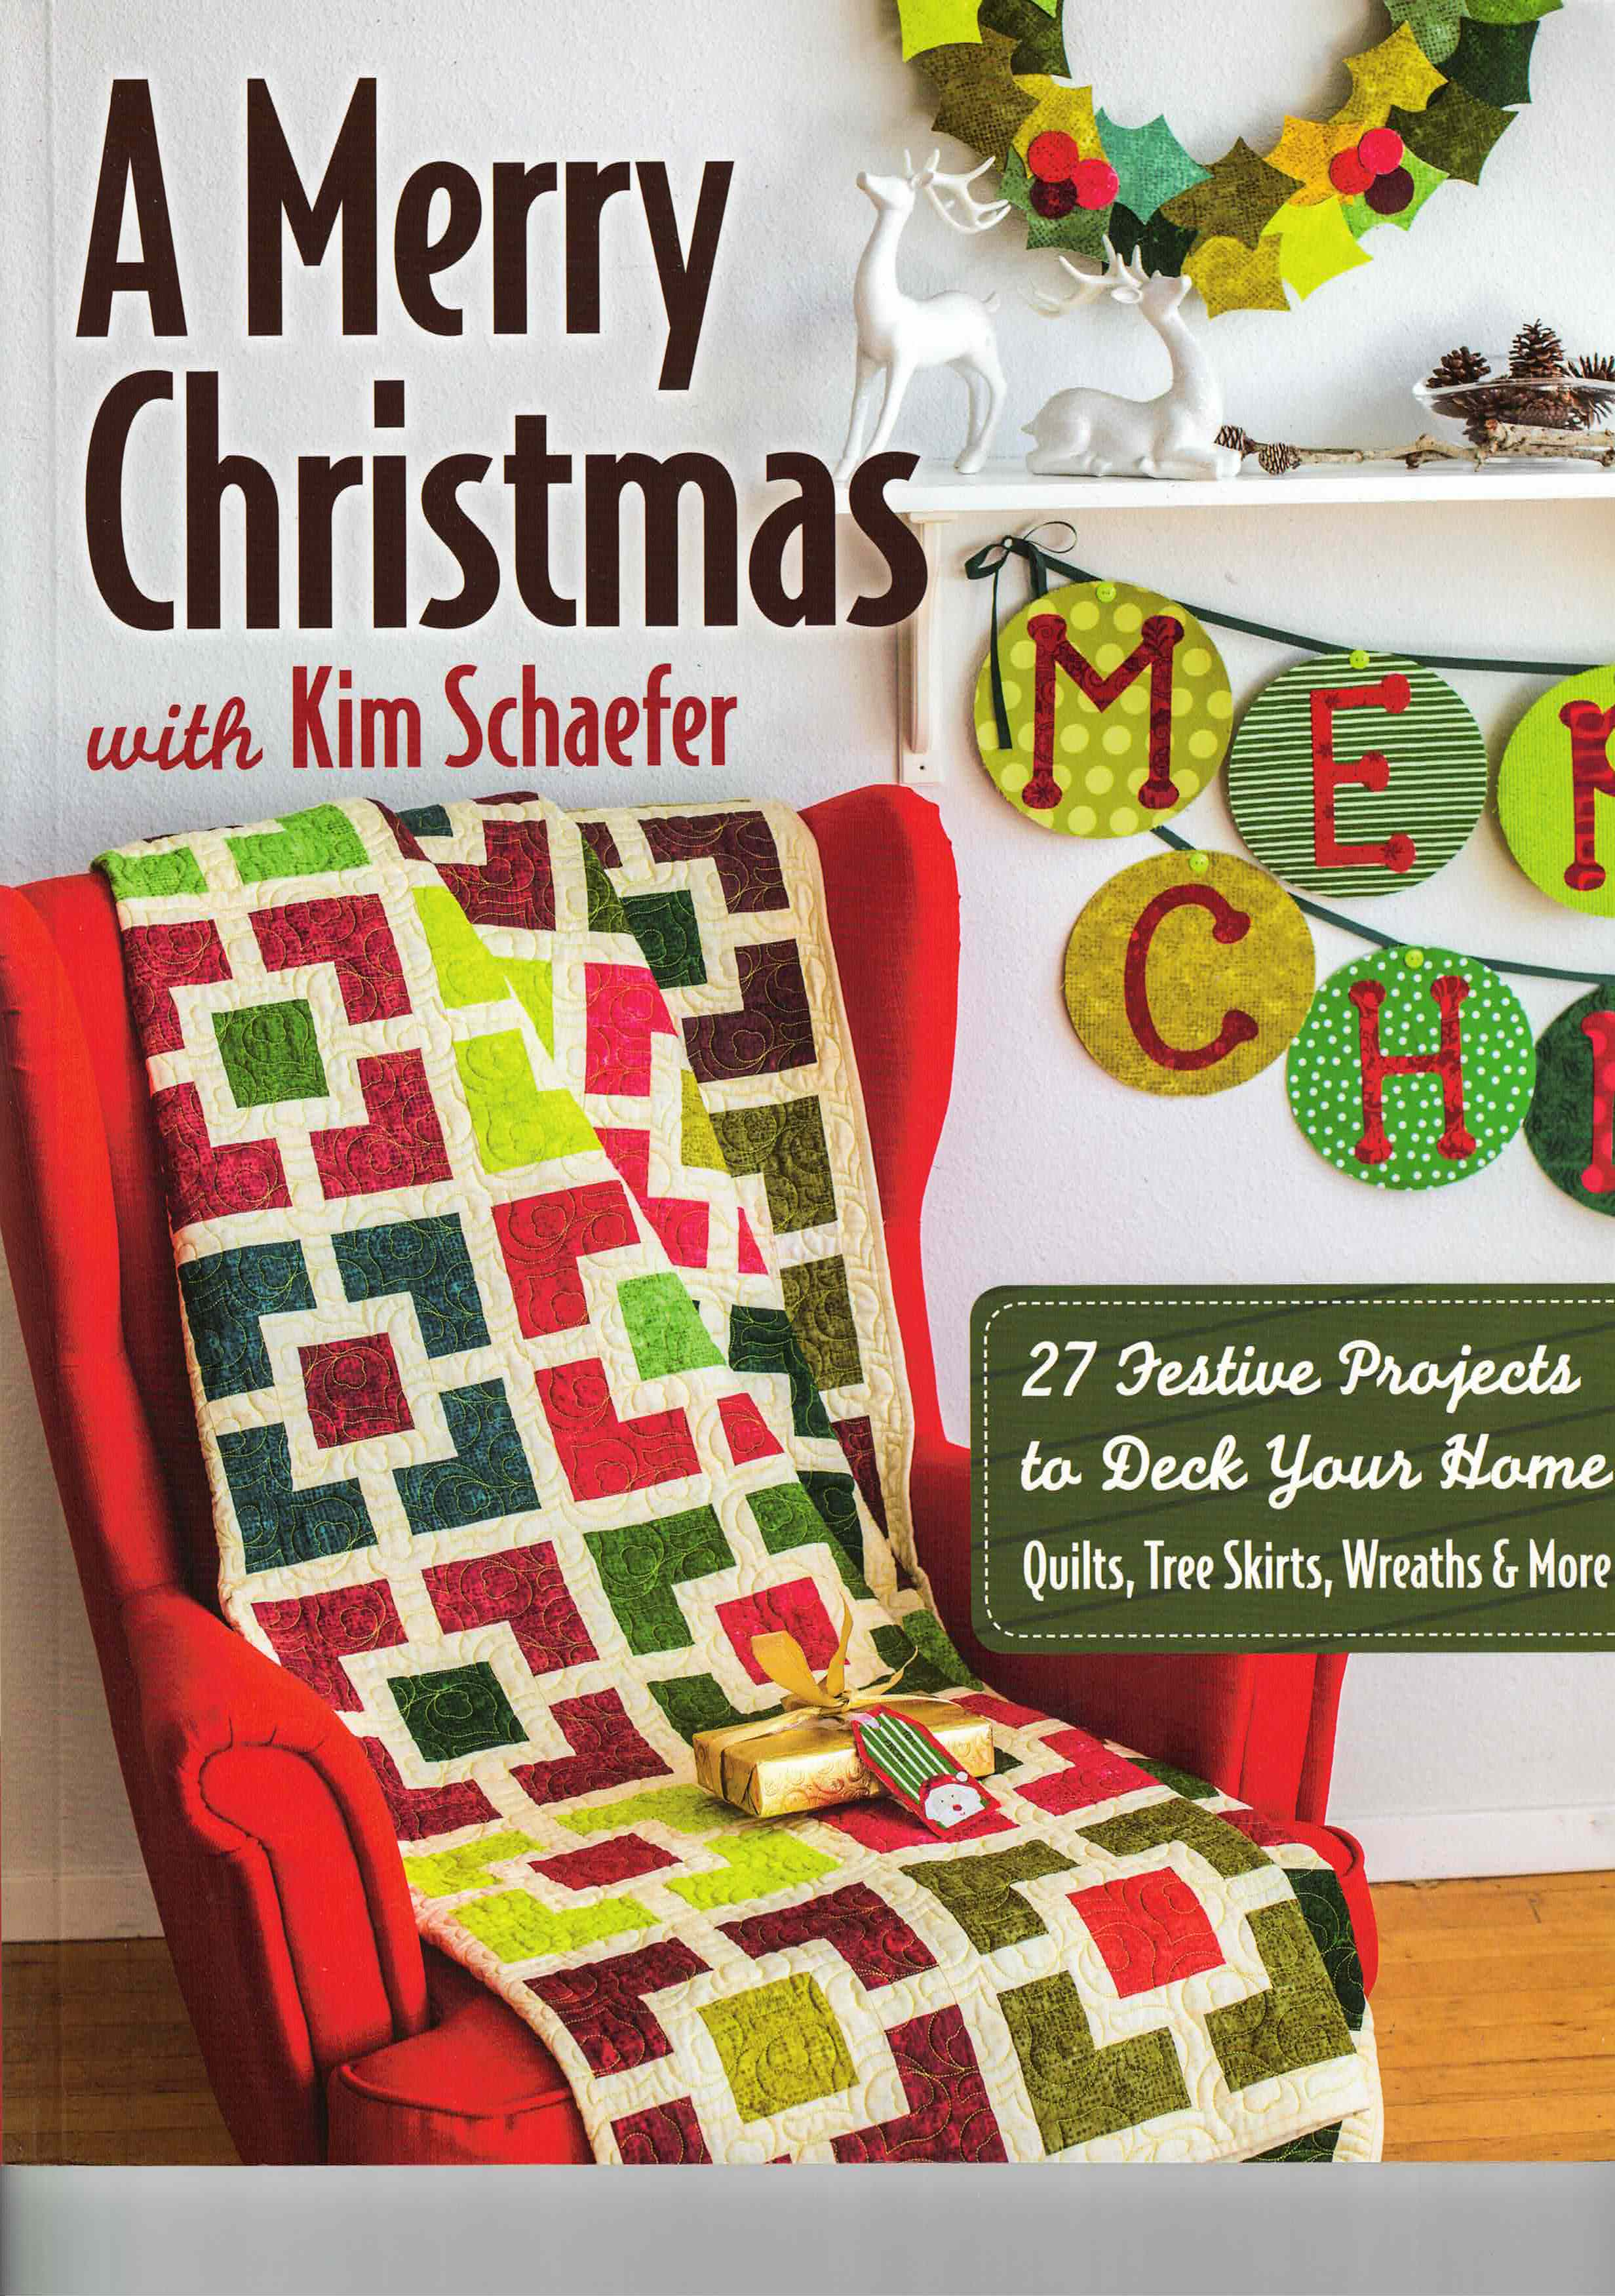 A Merry Christmas pattern book